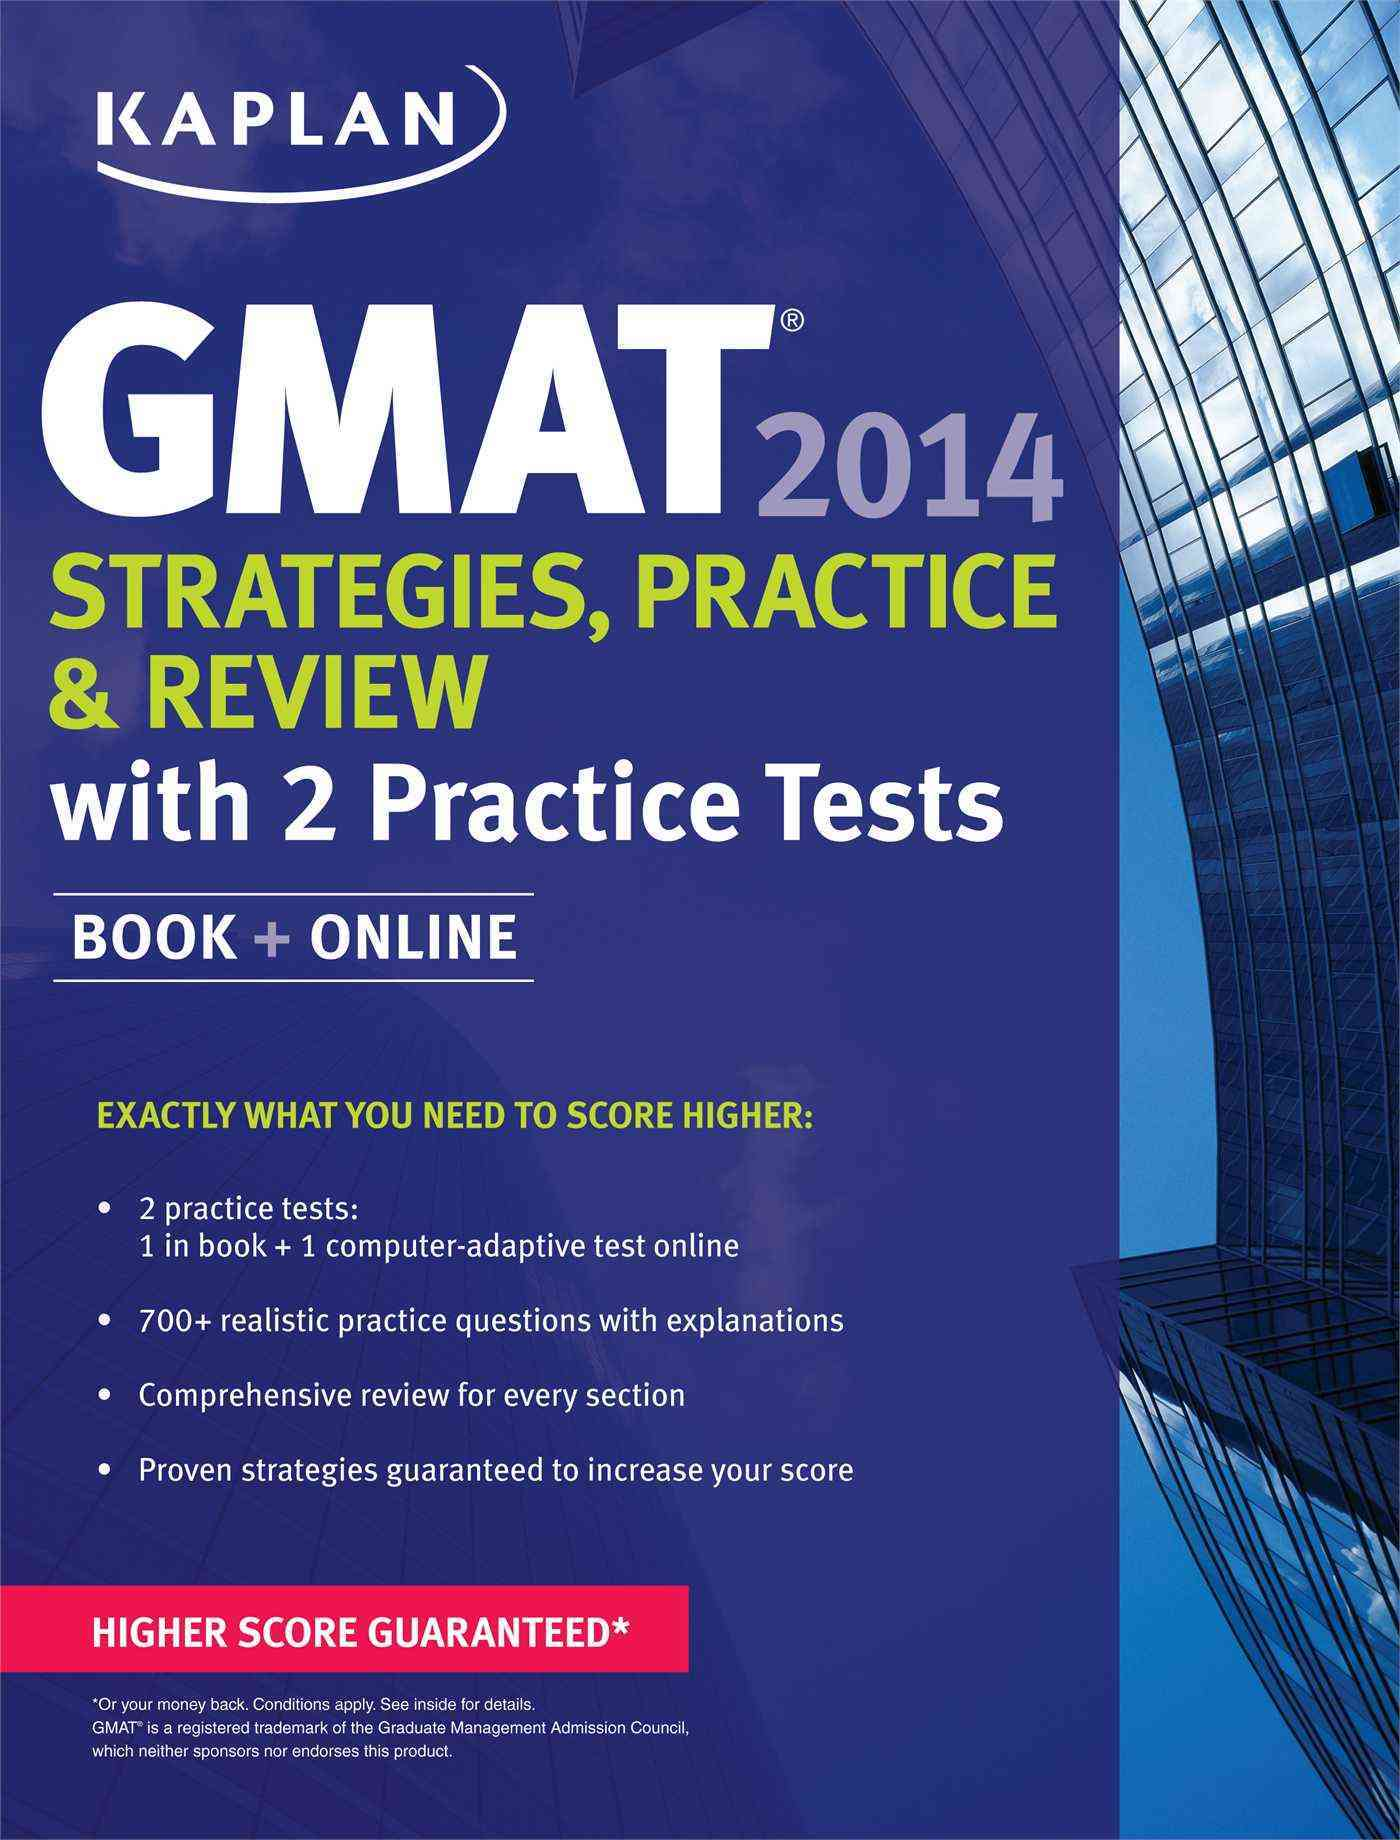 Kaplan GMAT Strategies, Practice, and Review 2014: With 2 Practice Tests